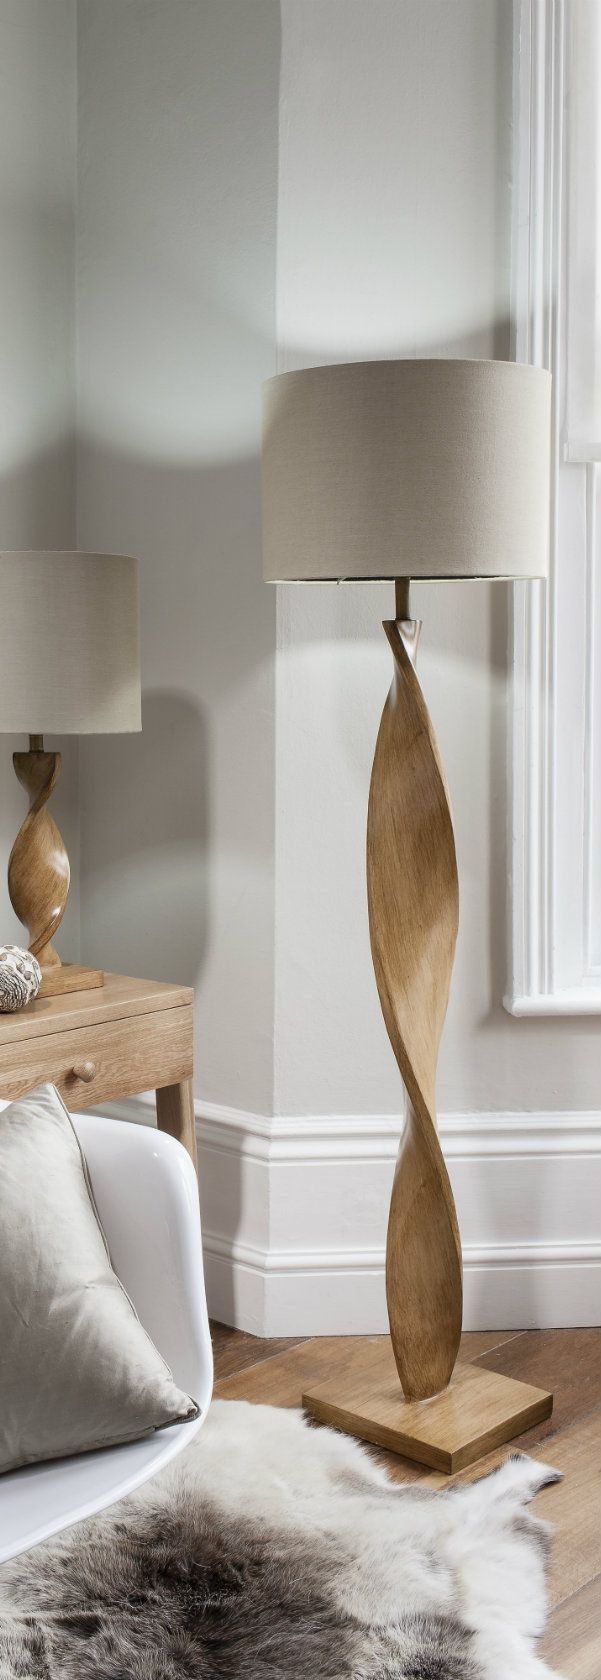 living room floor lamp. argenta 160cm floor lamp · ideas for living roomliving room